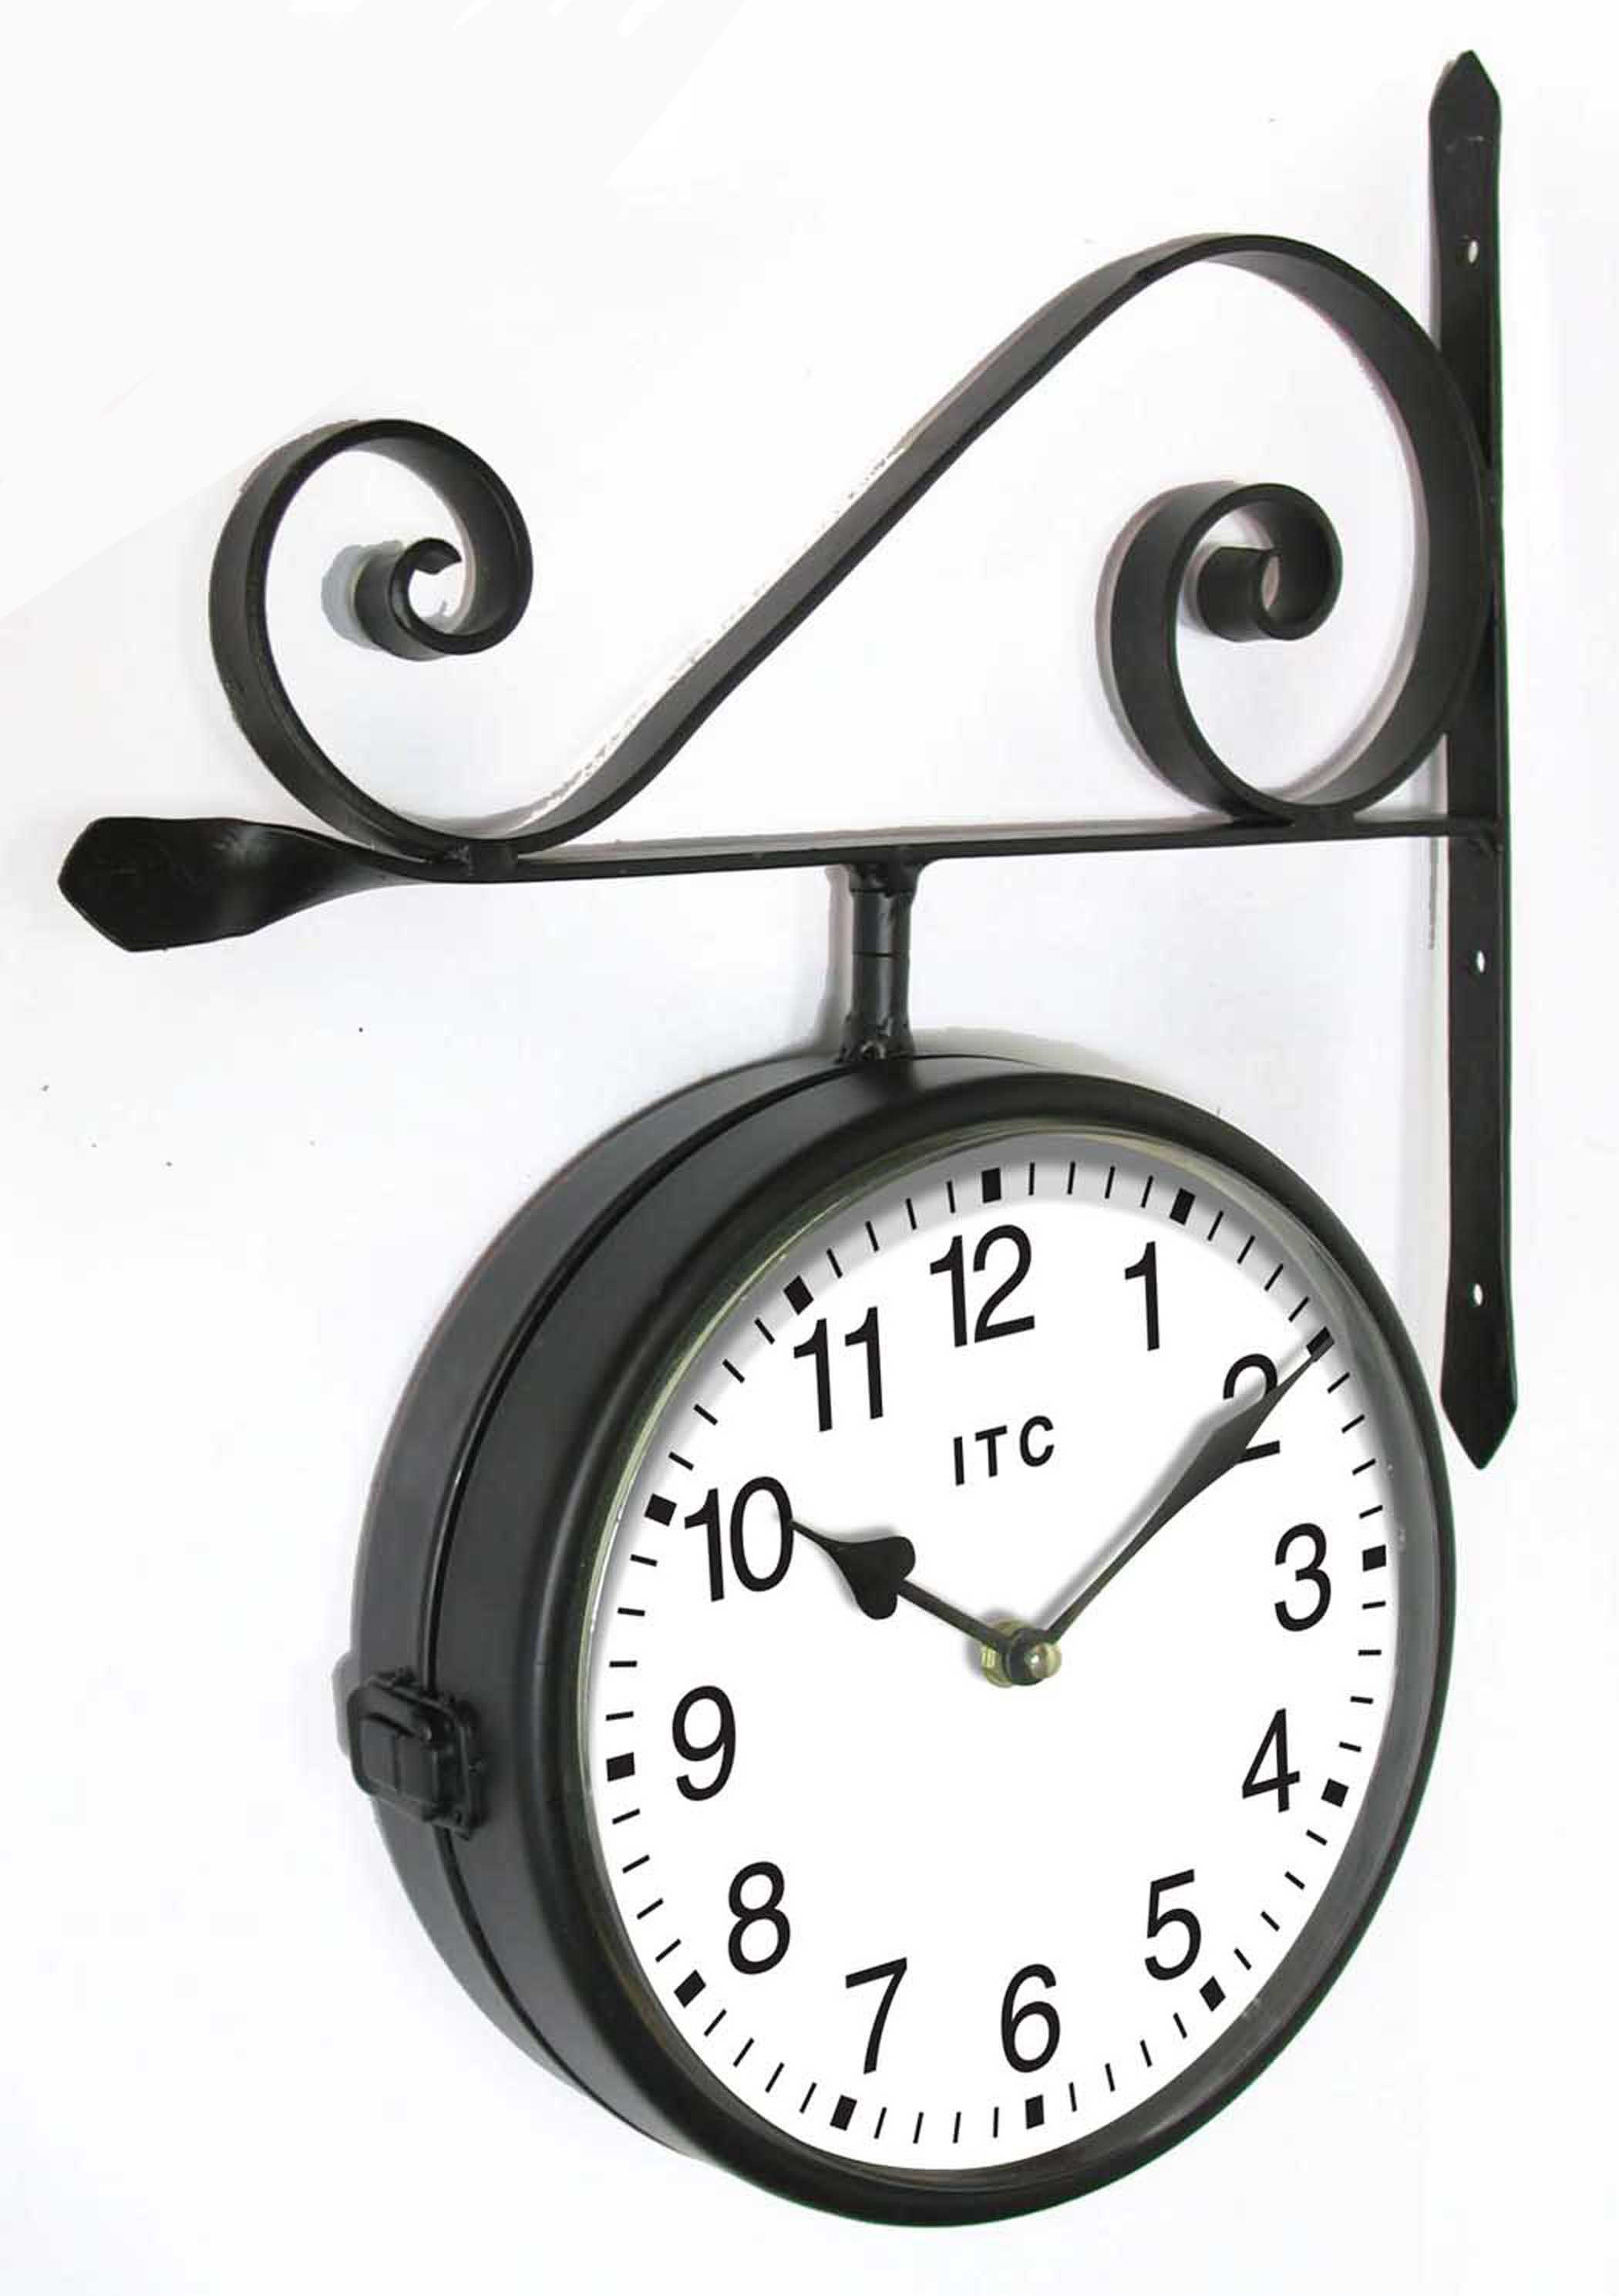 The Double sided black Wall Clock by Infinity Instruments offers a